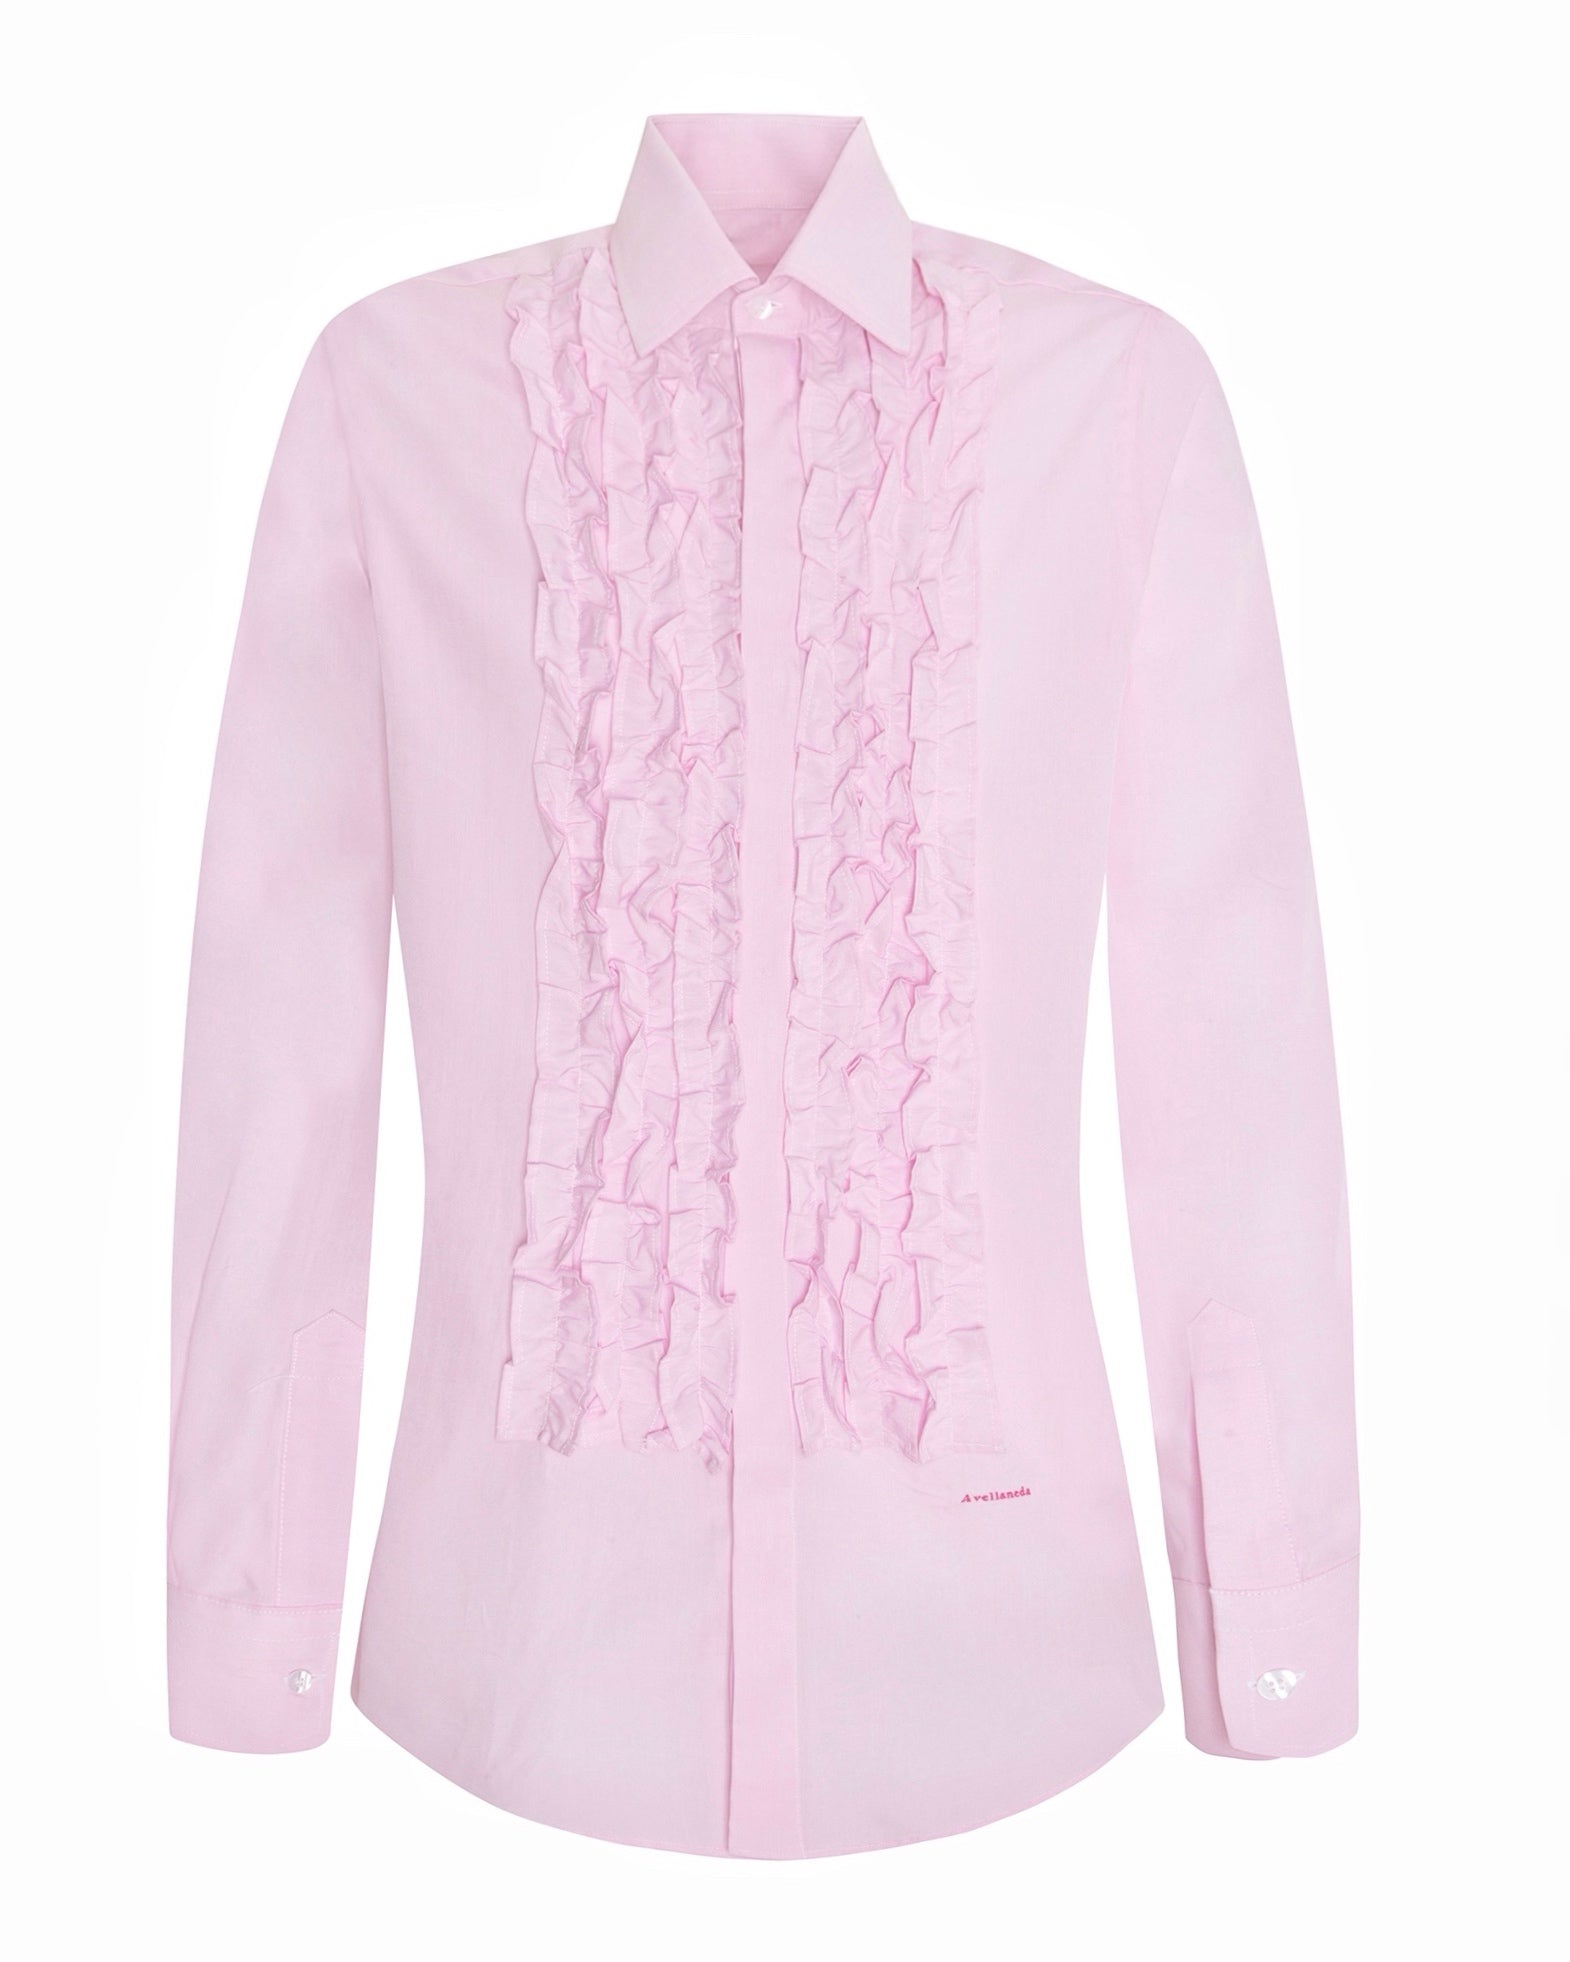 WOMEN'S MULTI-RUFFLED PINK SHIRT